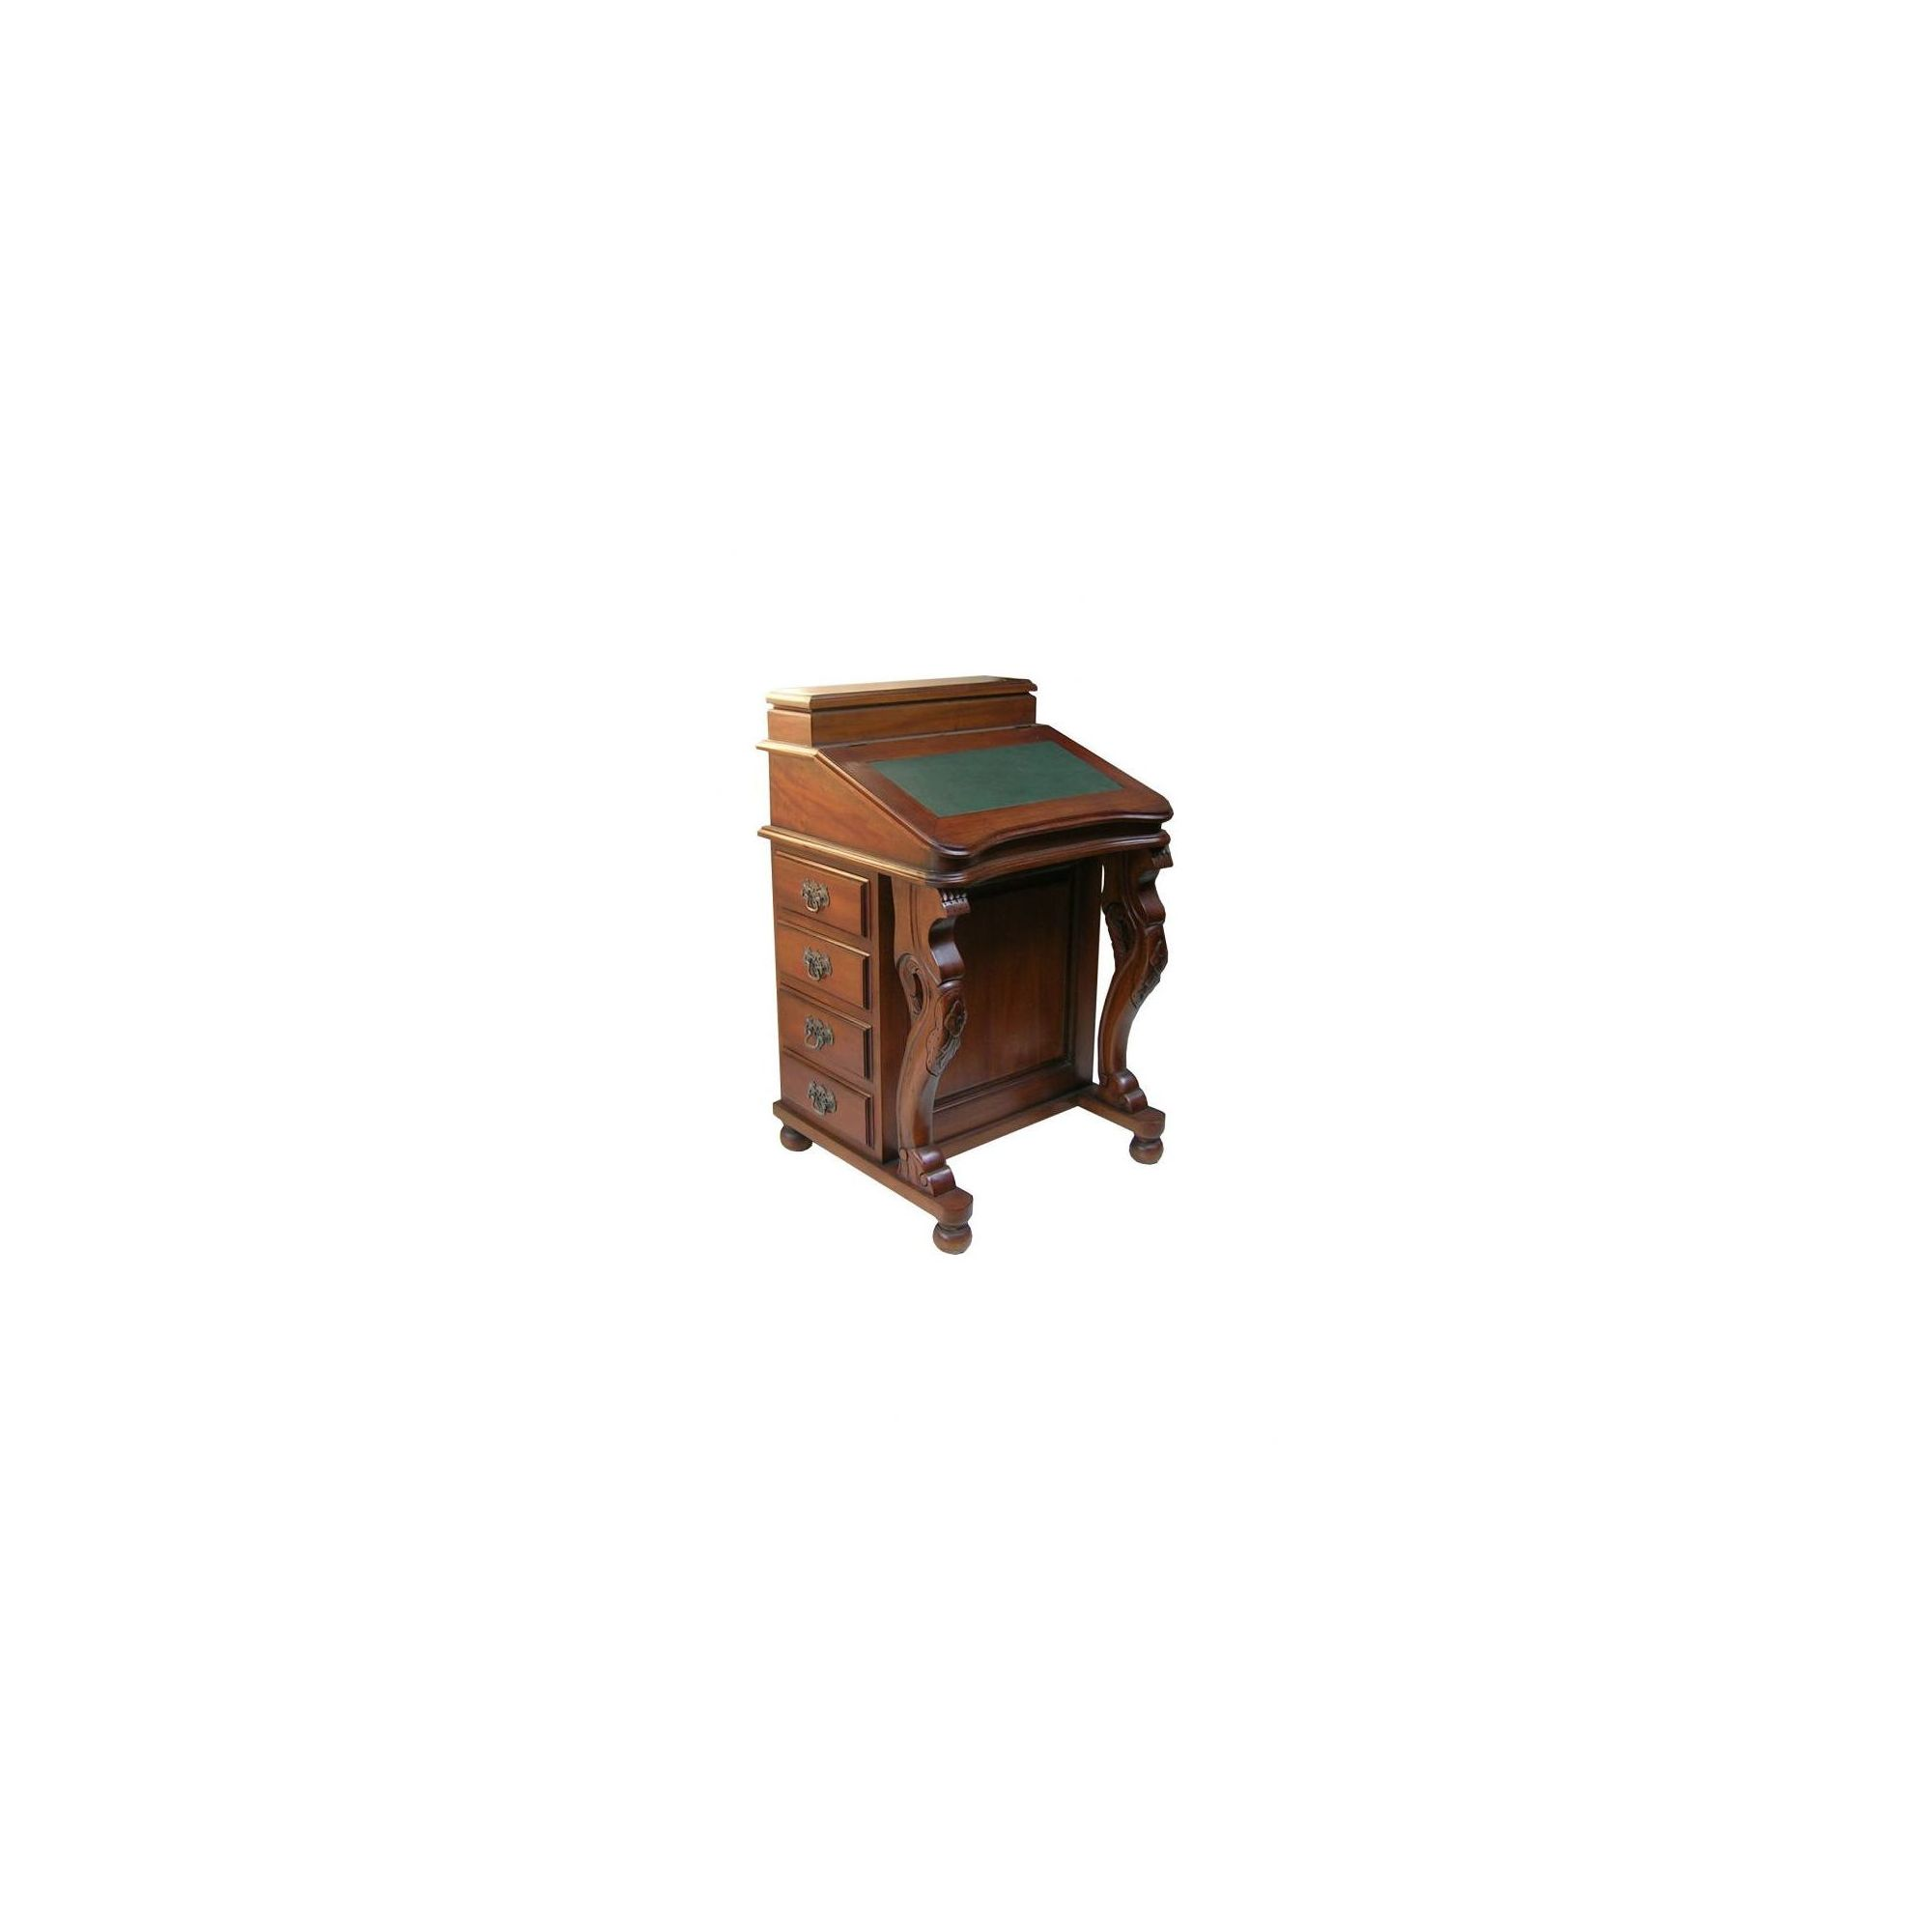 Lock stock and barrel Mahogany Davenport Desk with Leather Top in Mahogany at Tesco Direct